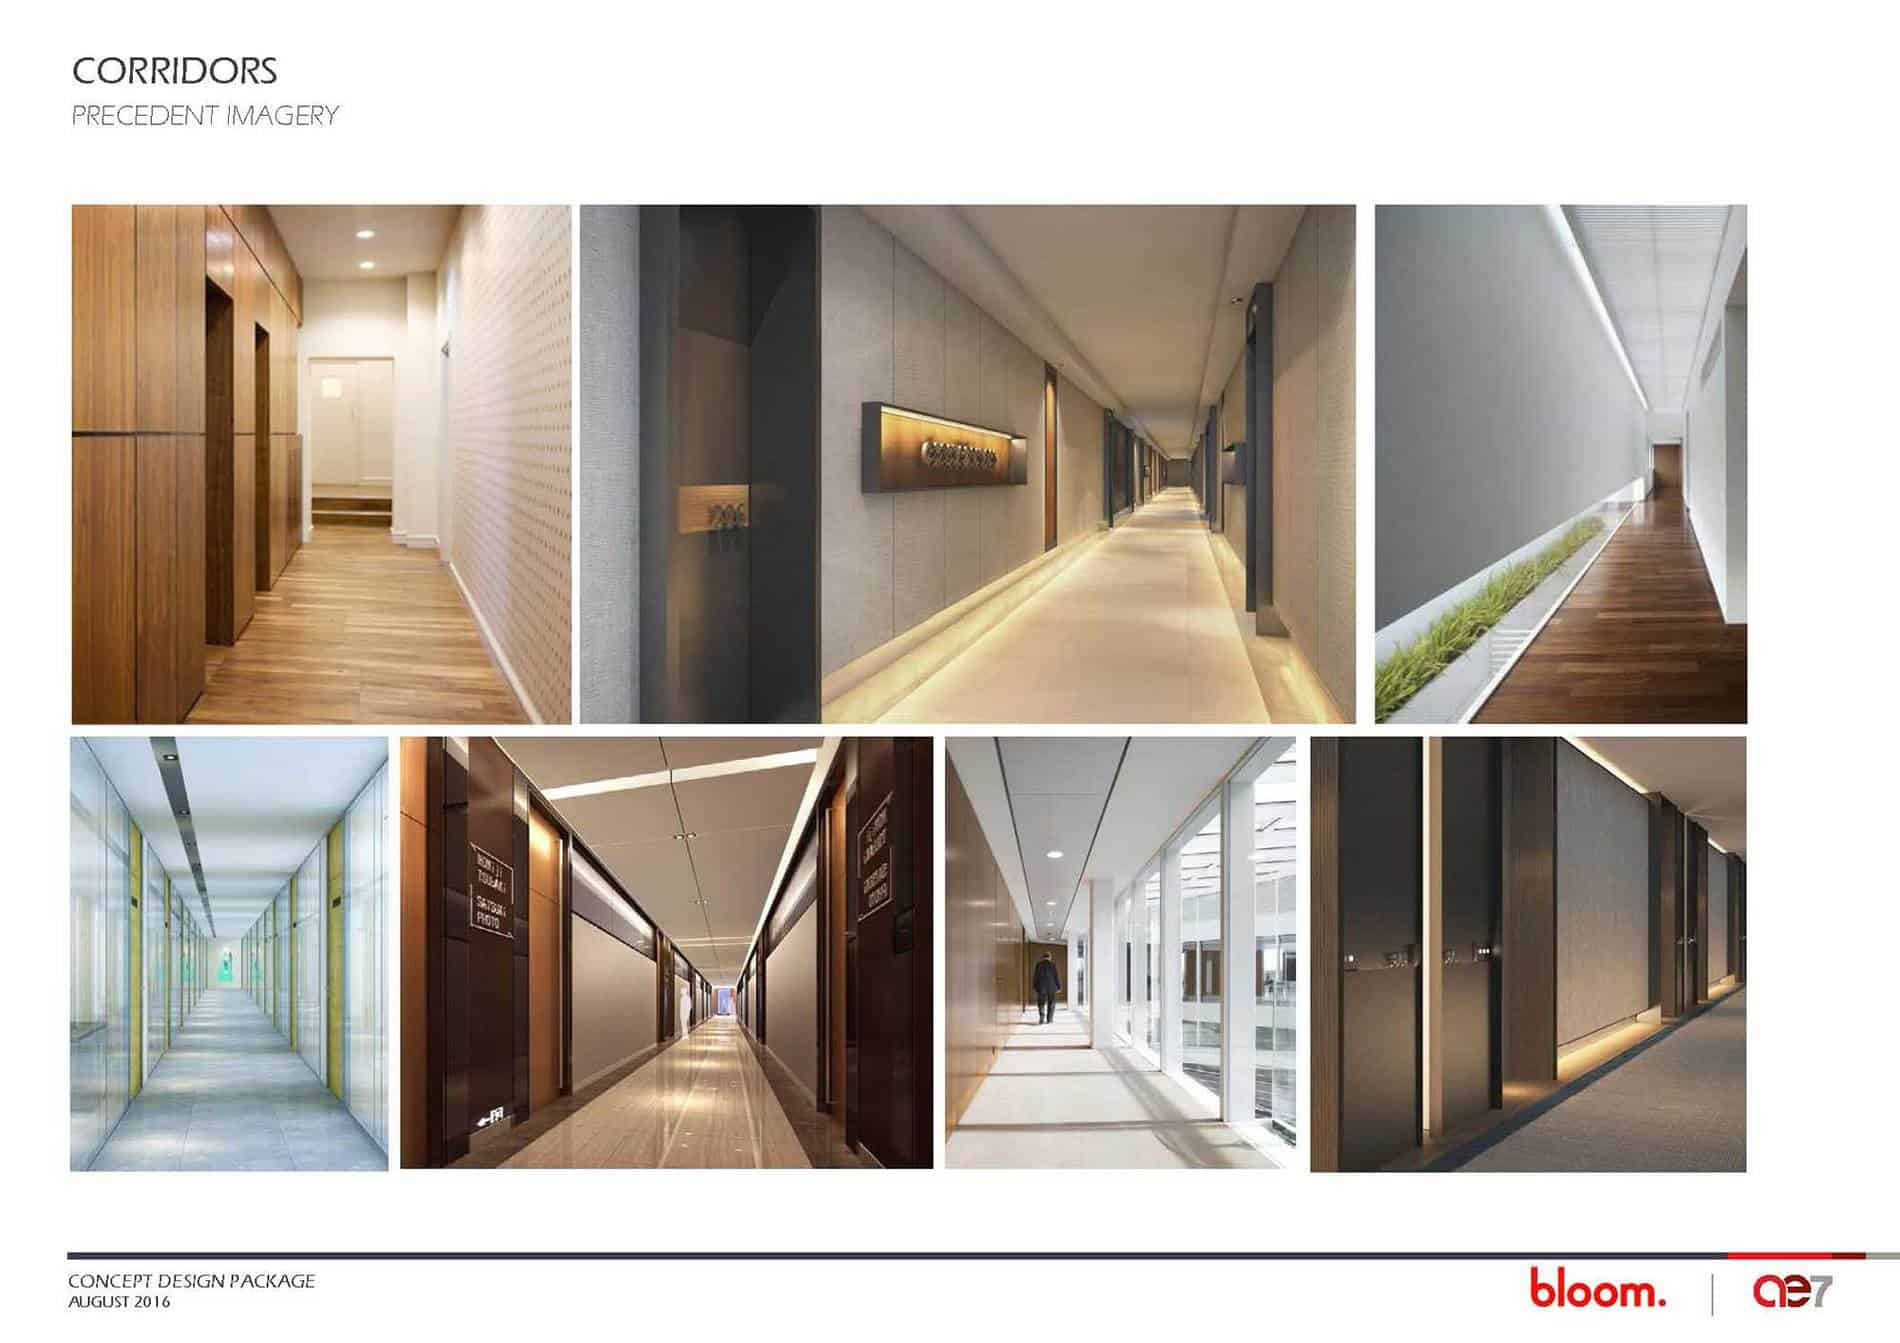 206 South Broadway Building Potential Corridors